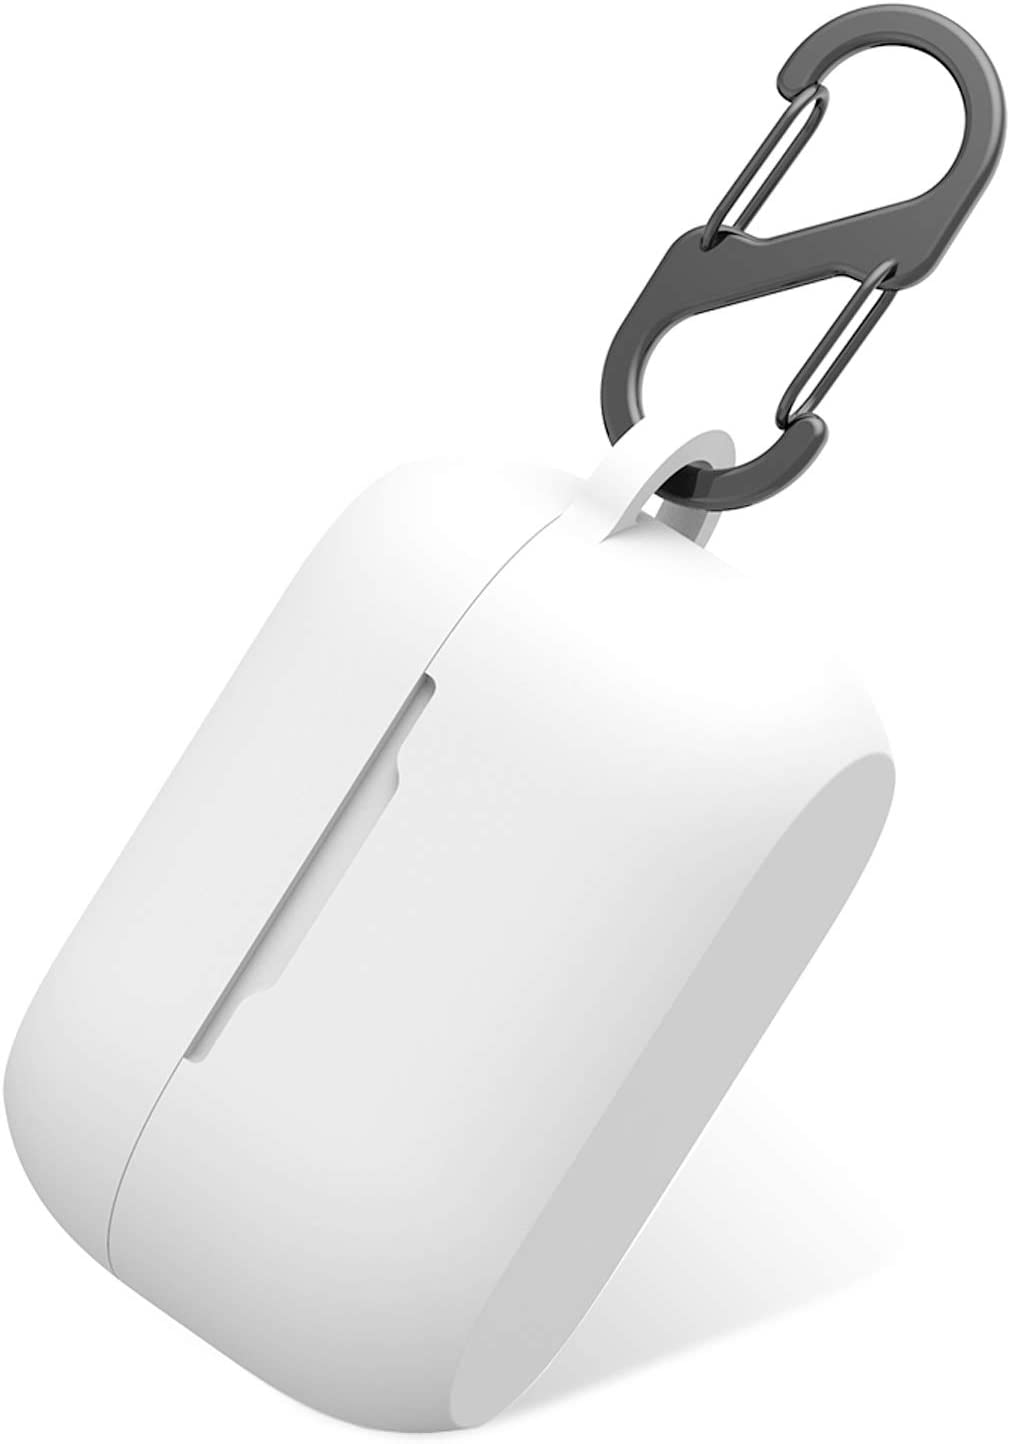 Aotao Silicone Case for Jabra Elite 75t & Jabra Elite Active 75t, Soft and Flexible, Scratch/Shock Resistant Cover with Carabiner for Jabra 75t Earbuds (Elite 75t, White)